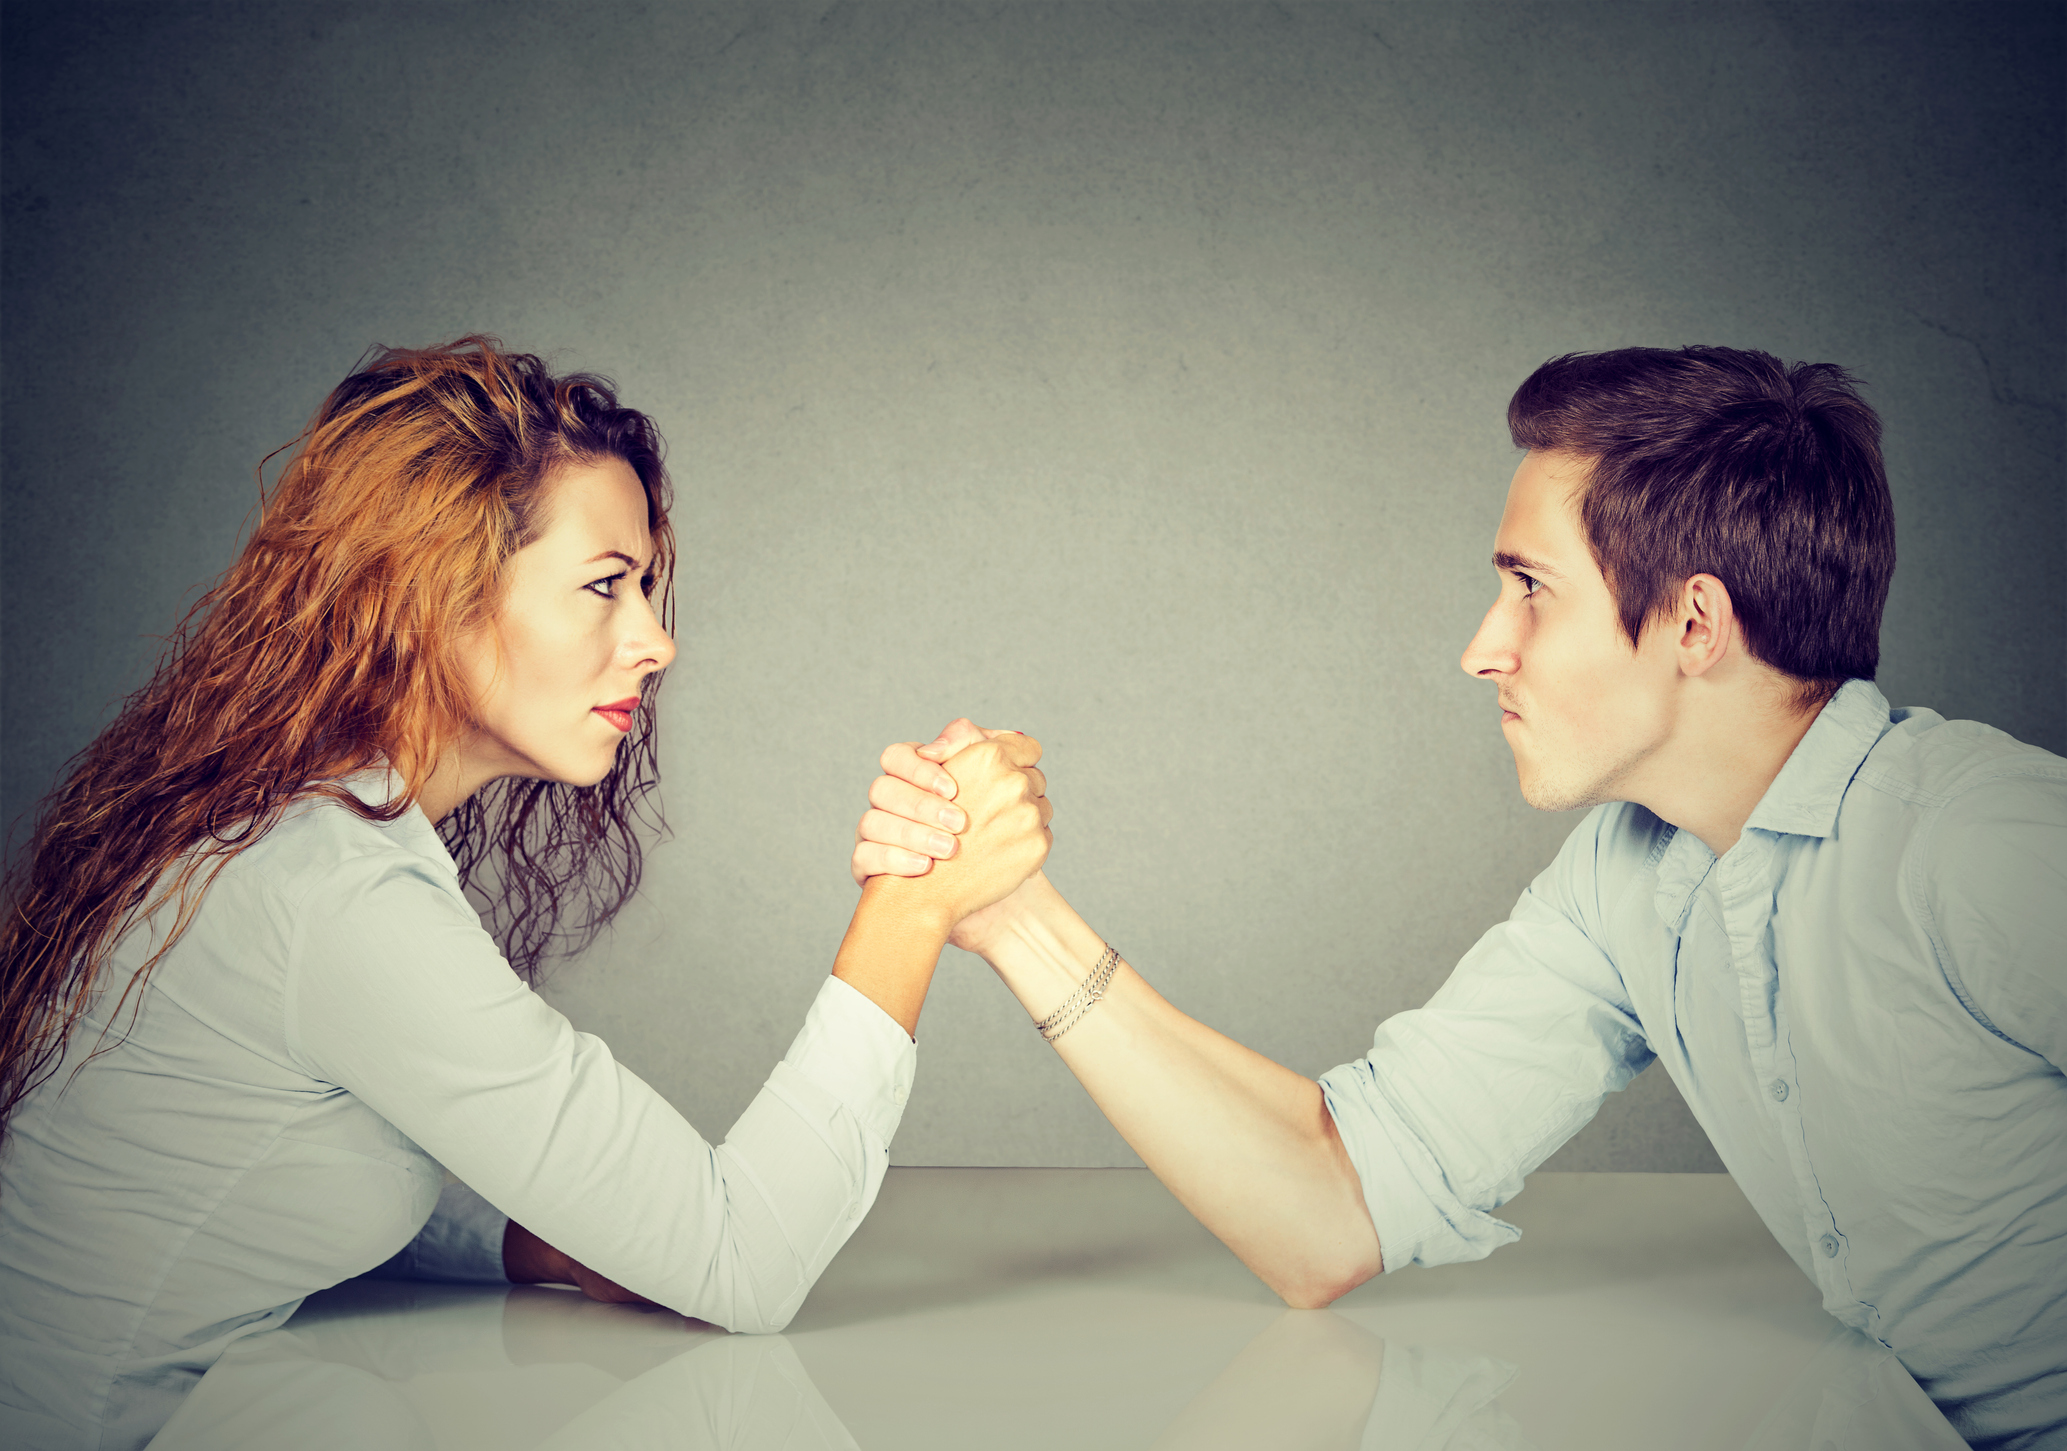 A man and woman arm wrestling.